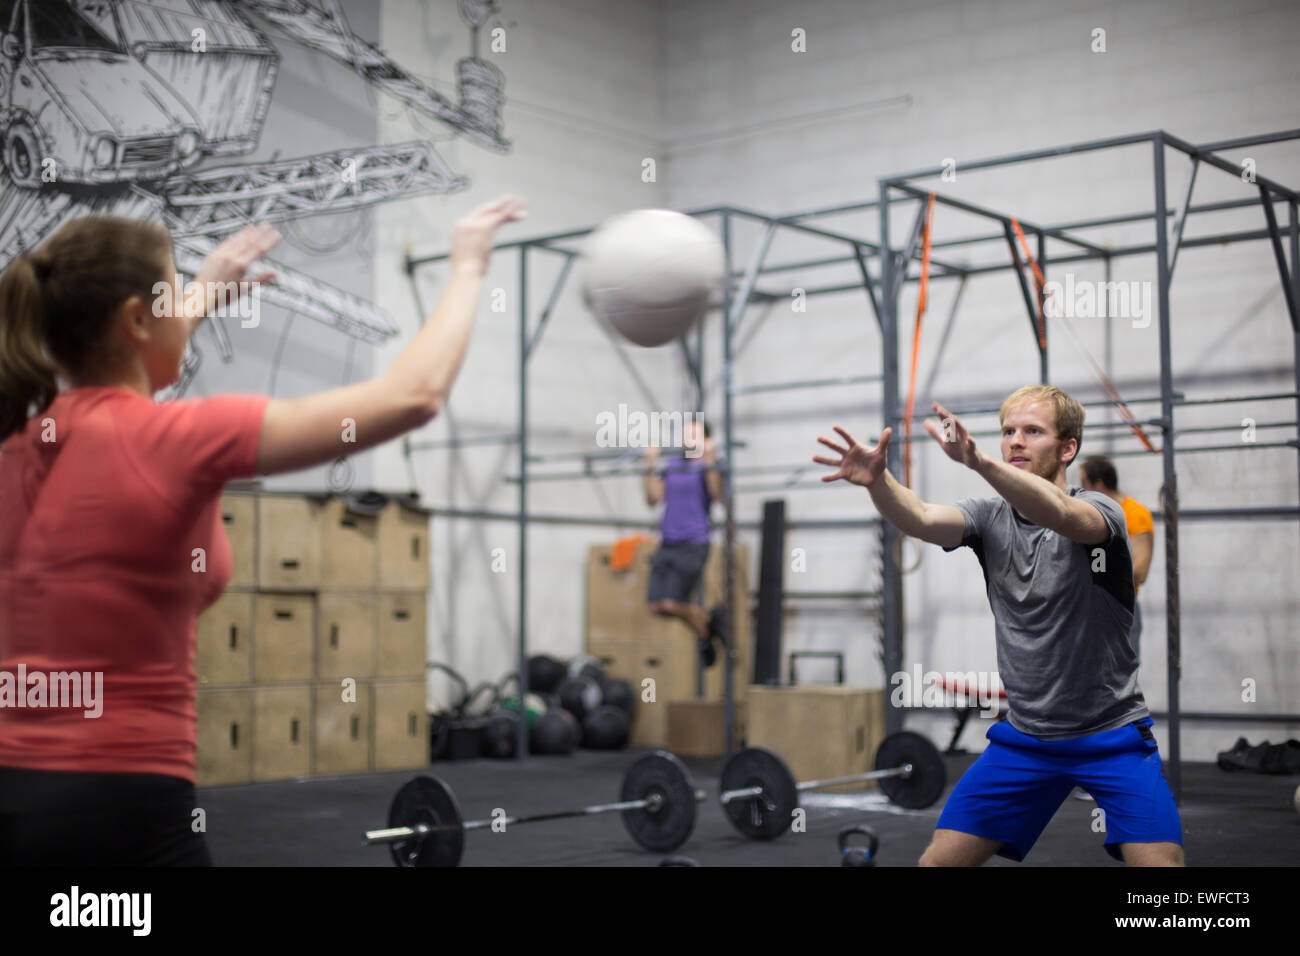 Man throwing medicine ball towards woman in crossfit gym - Stock Image